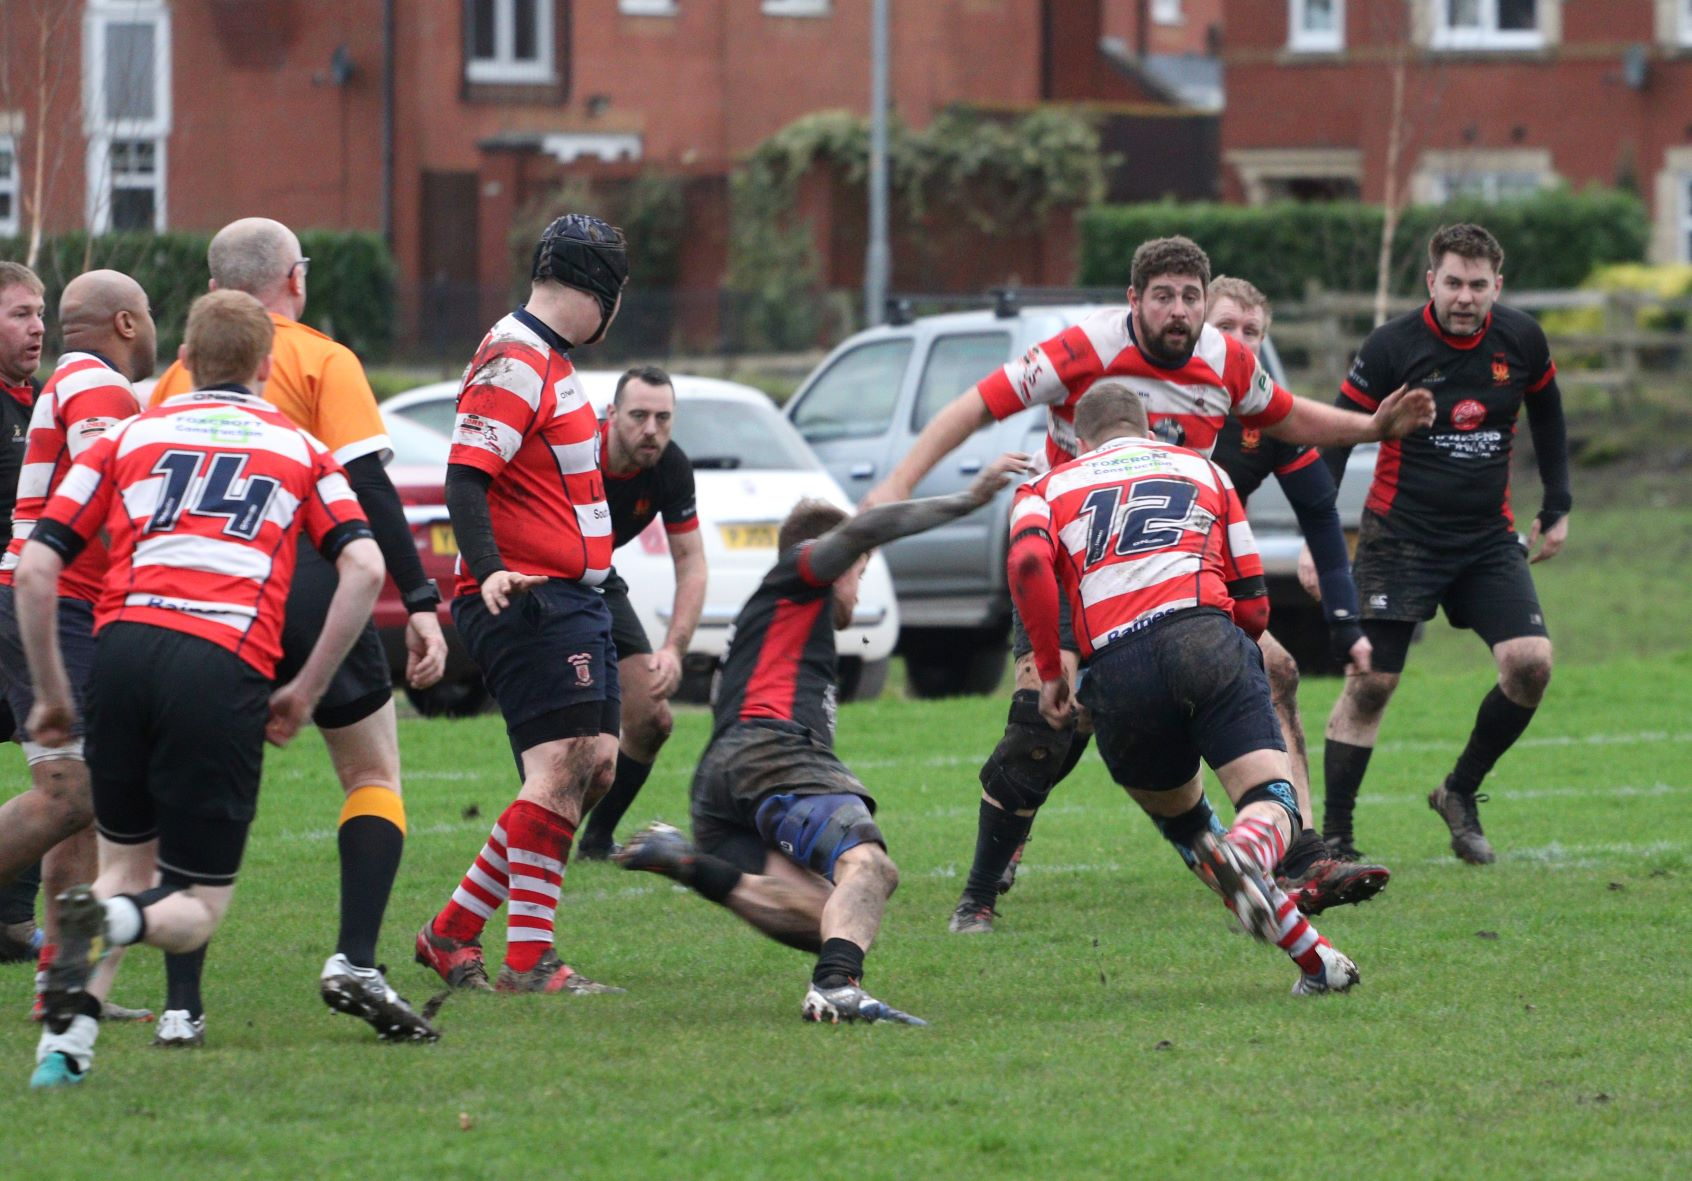 James Trickett & Son Division 4 North Lostock 1st XV 40 pts v 0 pts Vale of Lune 3rd XV Pictures by Leon Wall